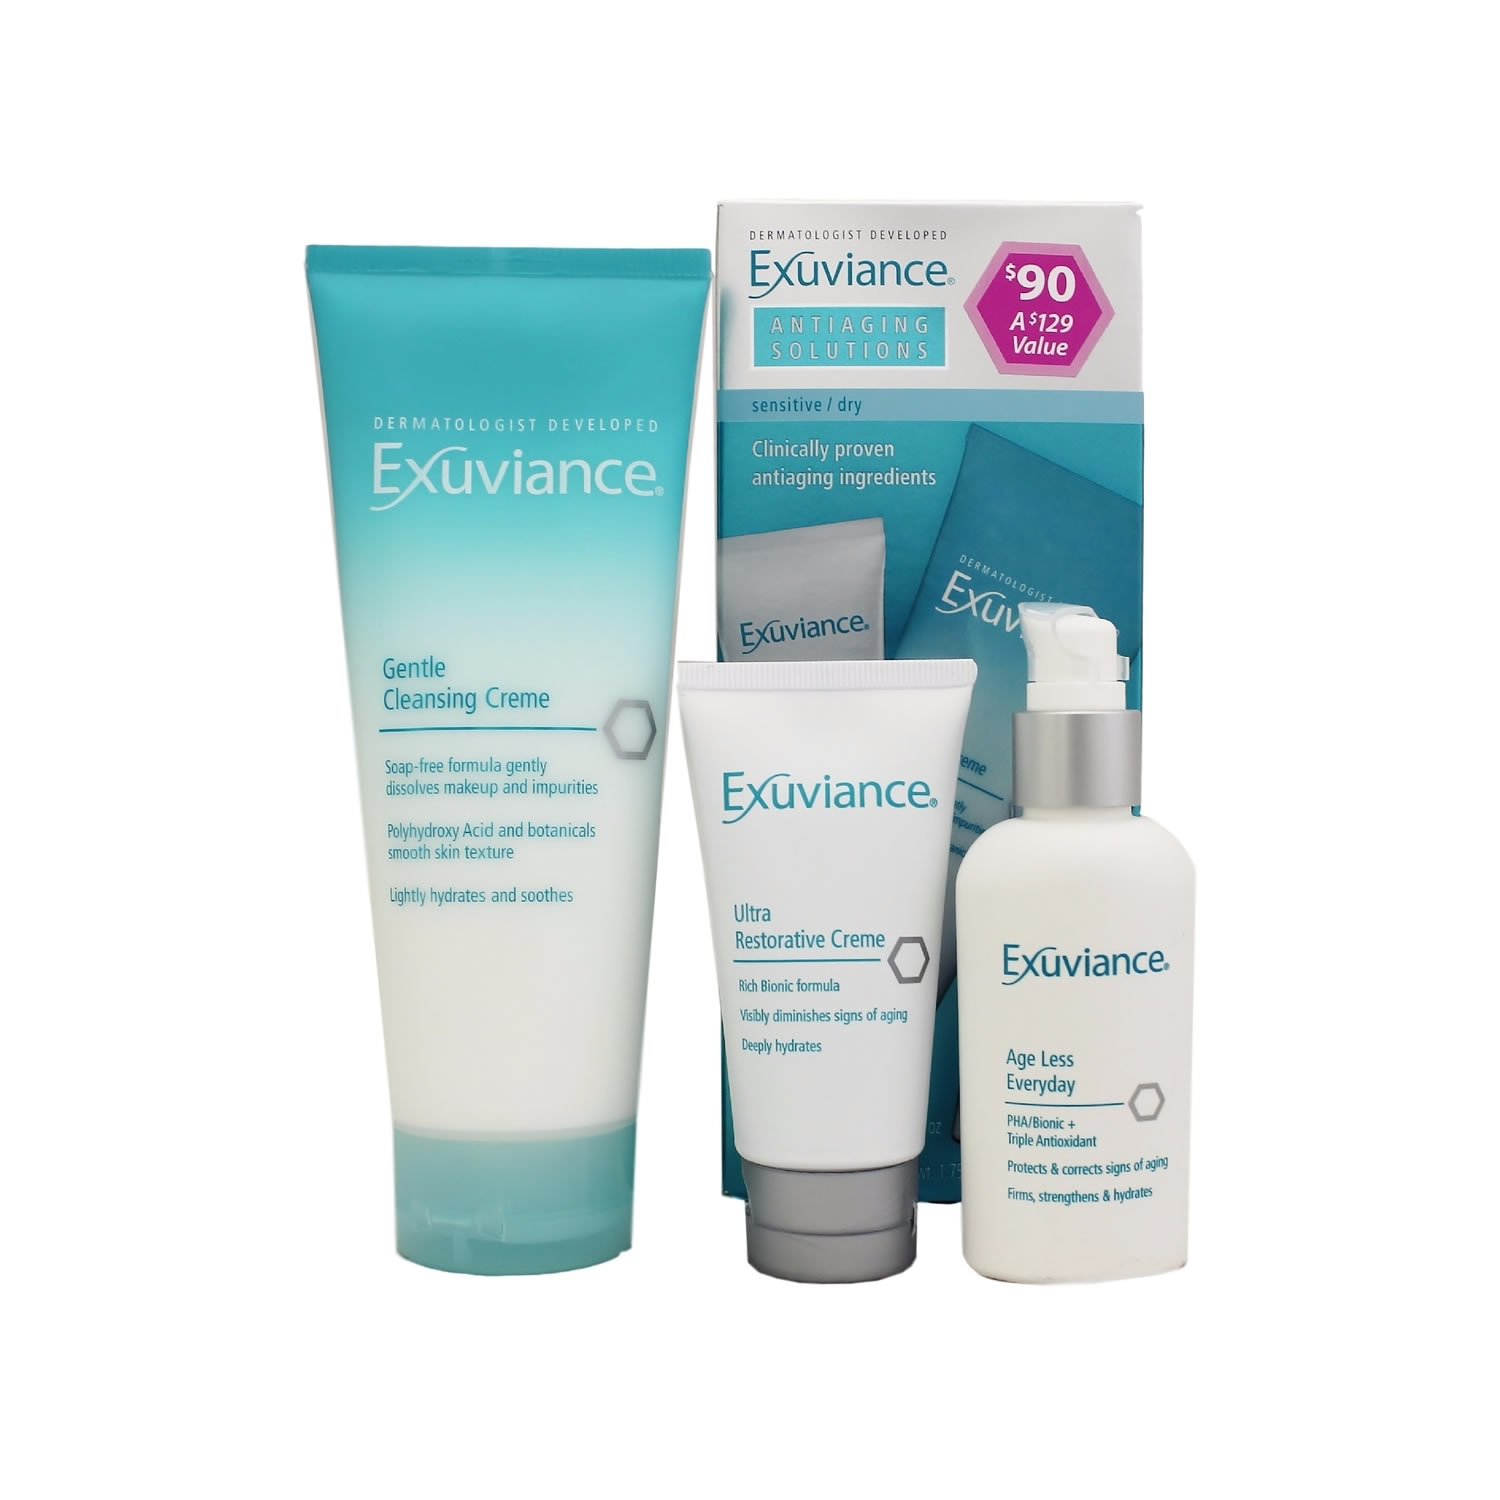 Exuviance Skin Care Reviews